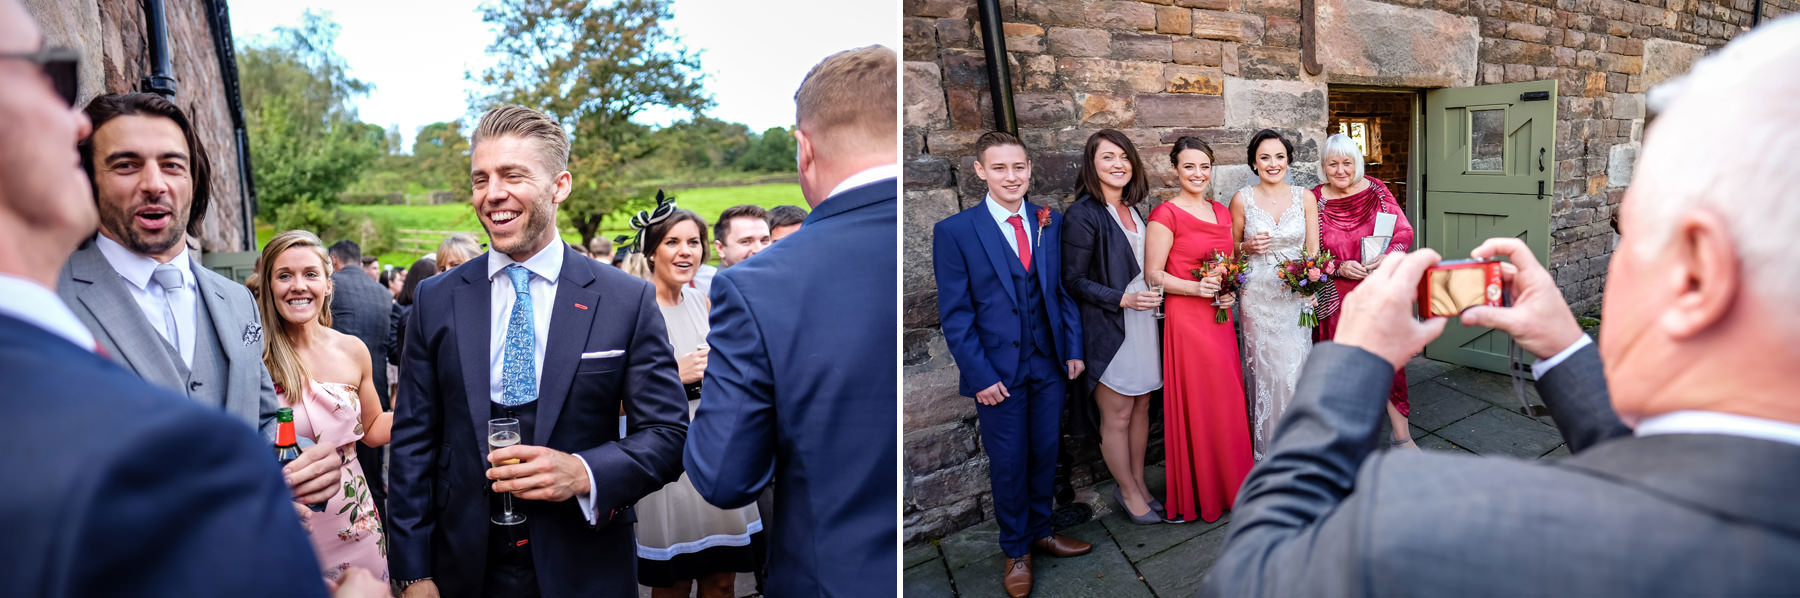 The Ashes Wedding Photography 20